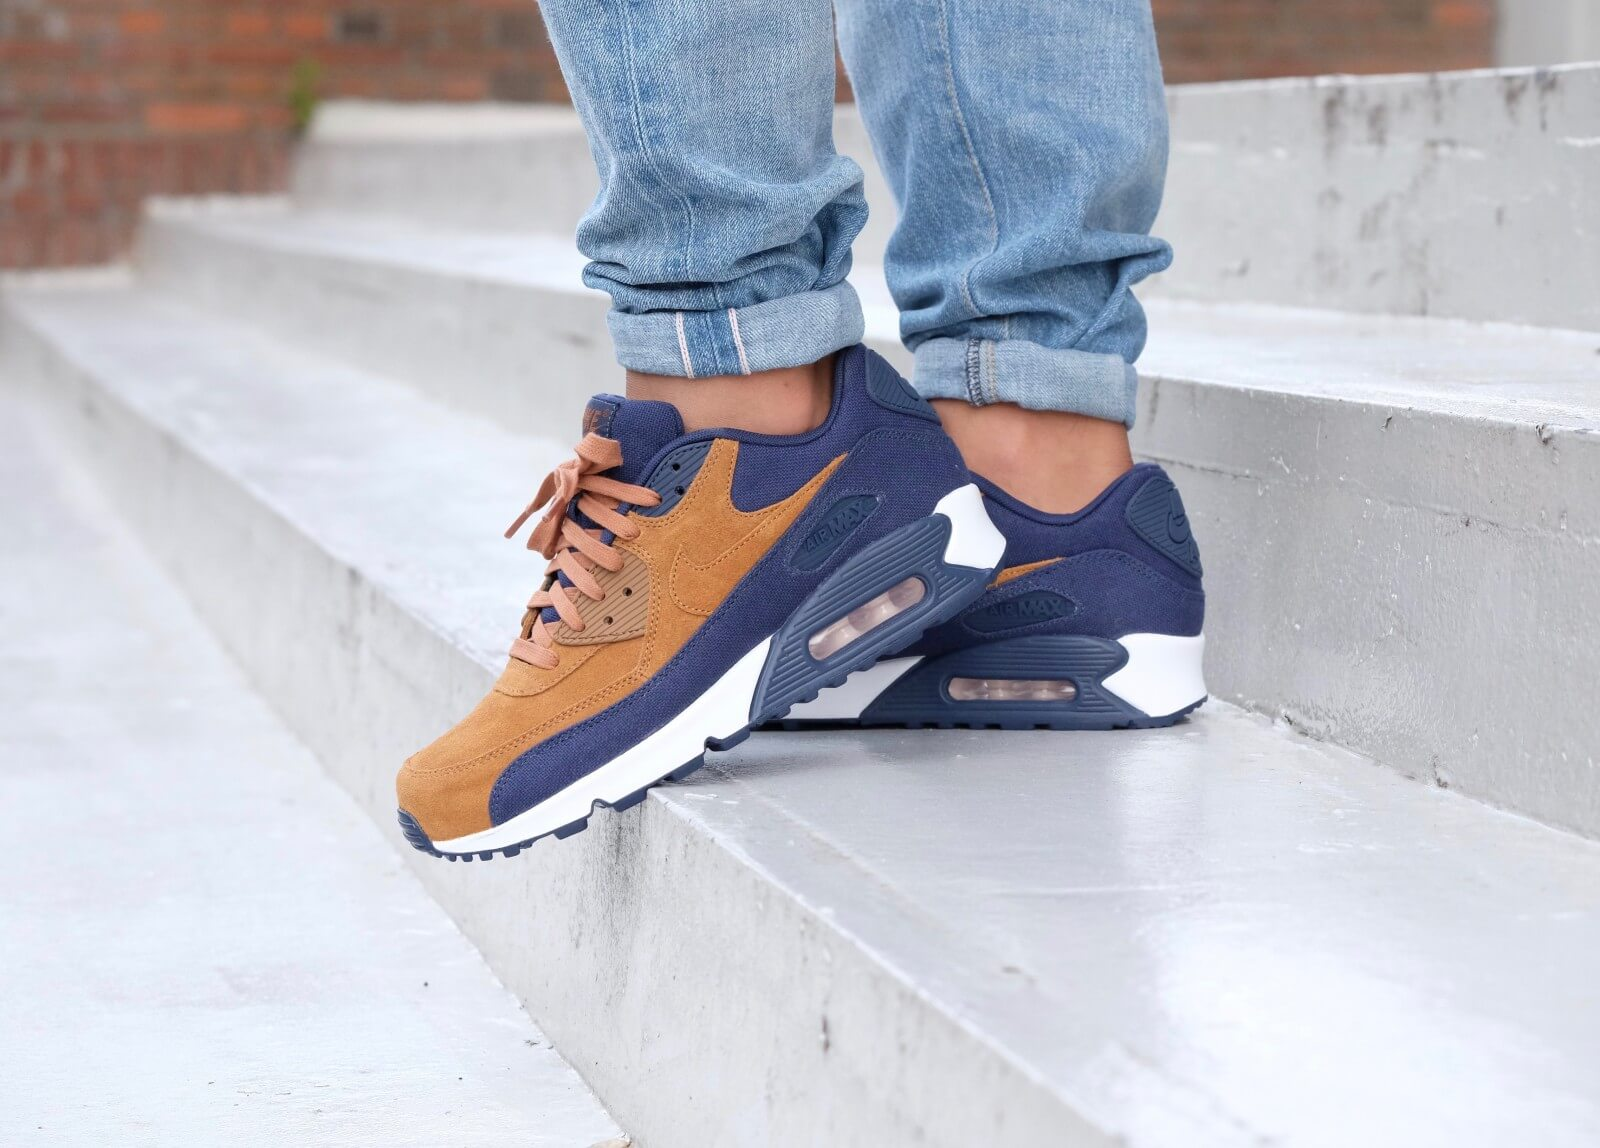 Nike Air Max 90 Premium Ale brownAle Brown Midnight Navy Sail 700155 201